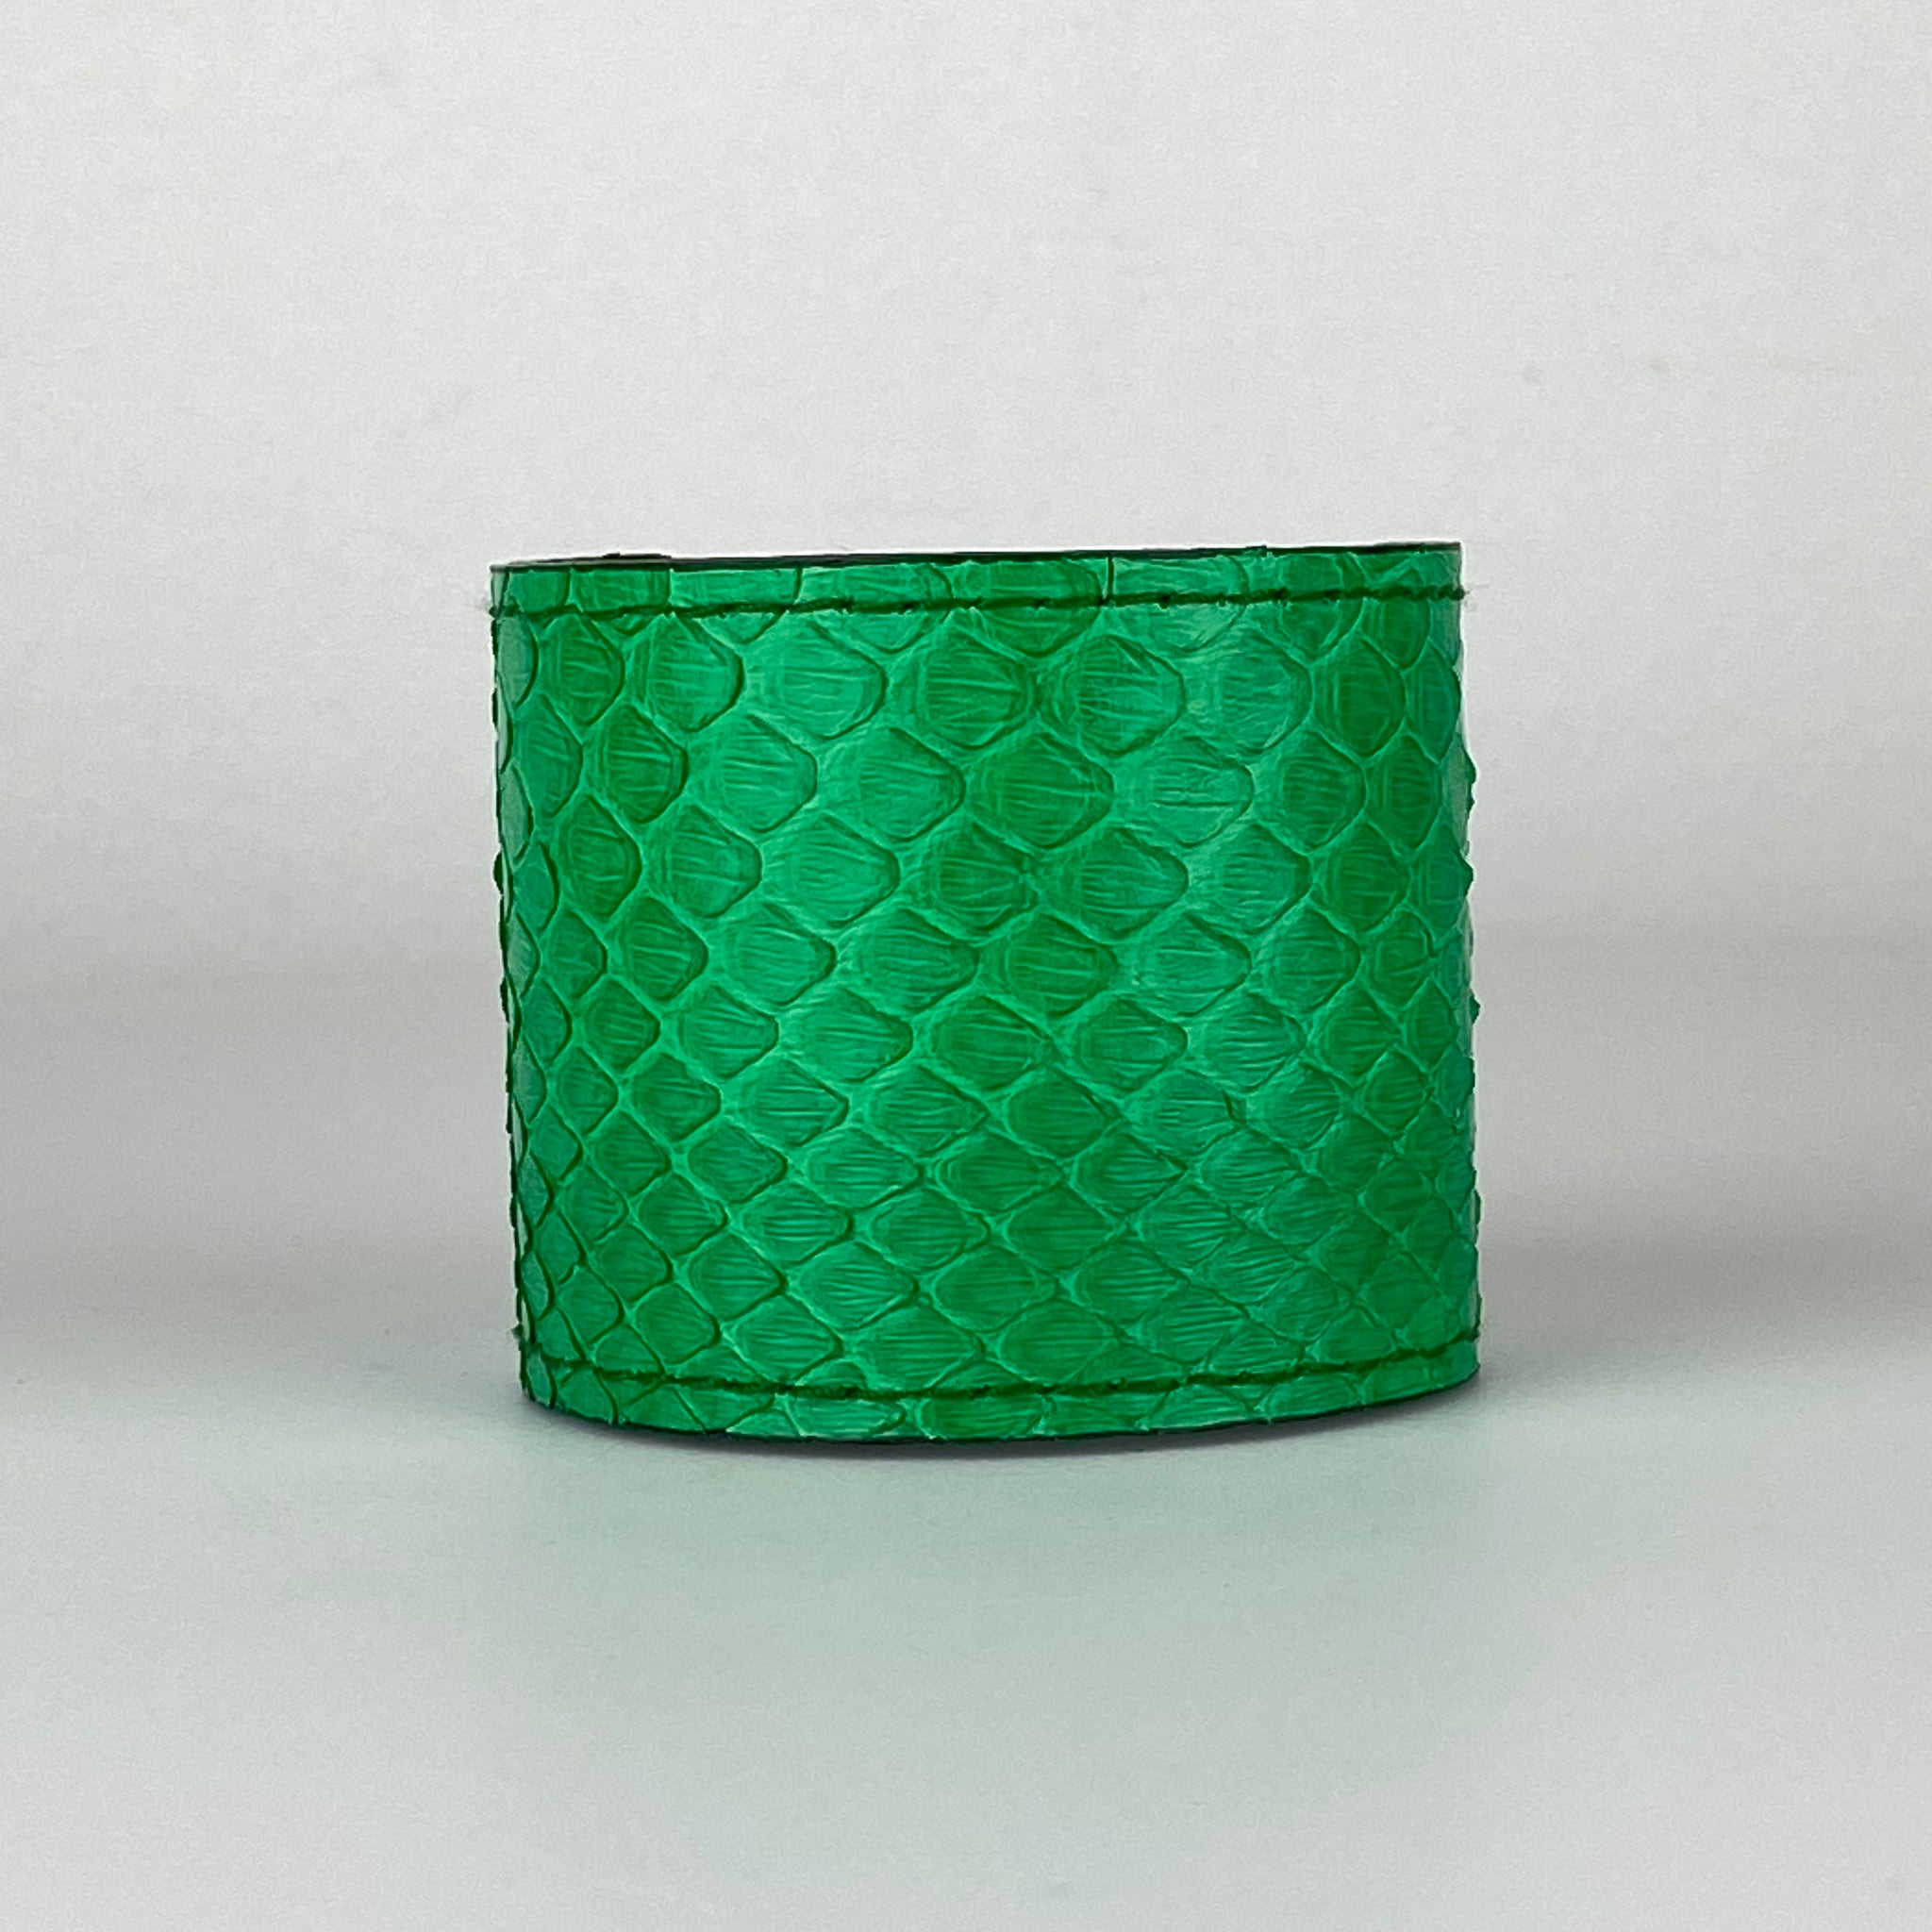 GREEN SNAKESKIN CUFF S/M ADJUSTABLE